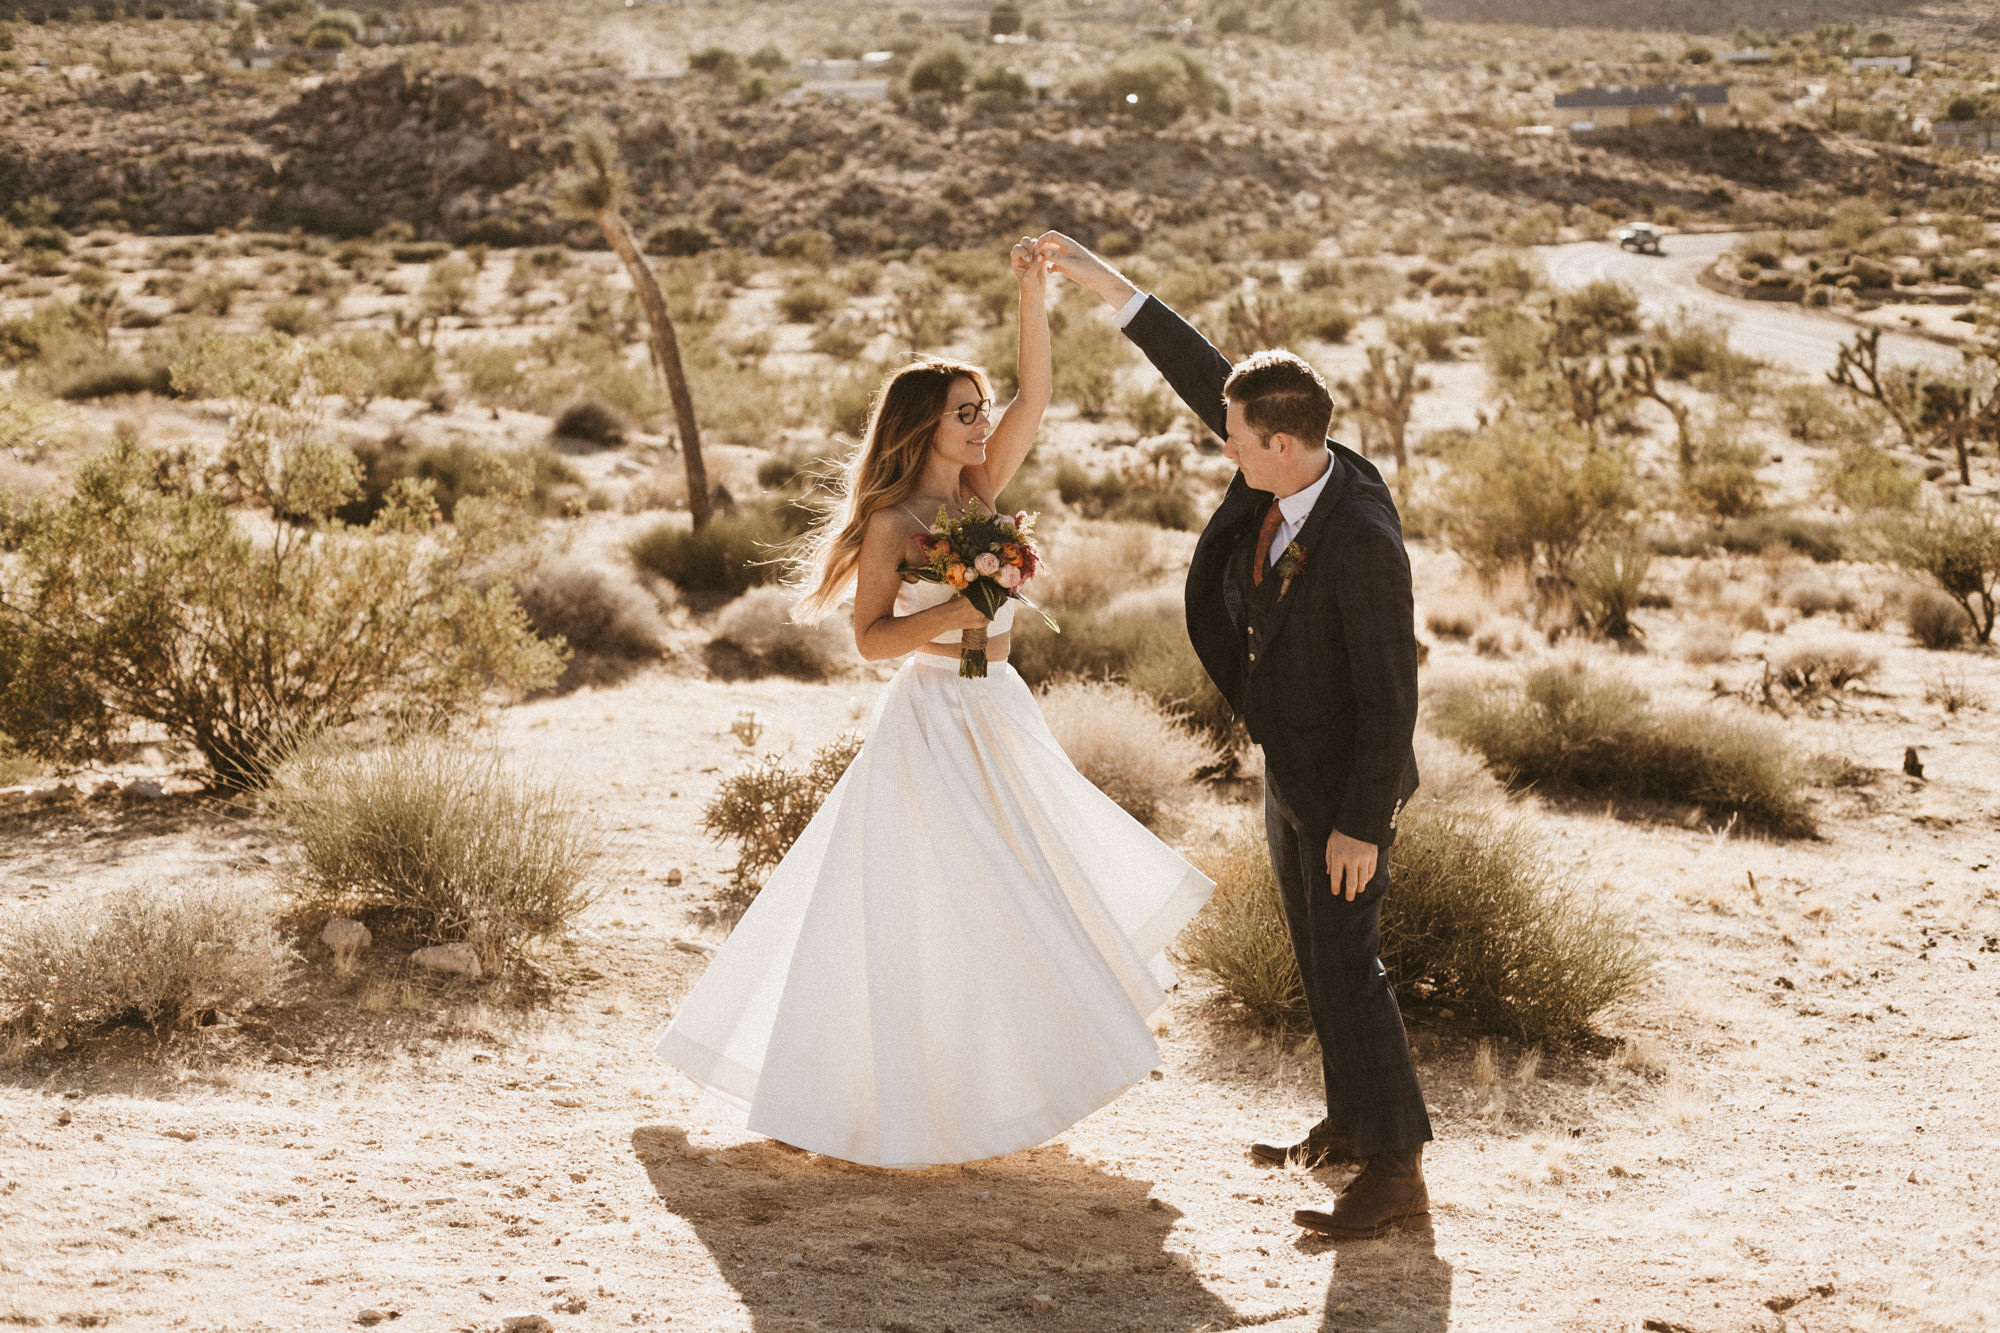 sacred_sands_joshua_tree_wedding-46.jpg